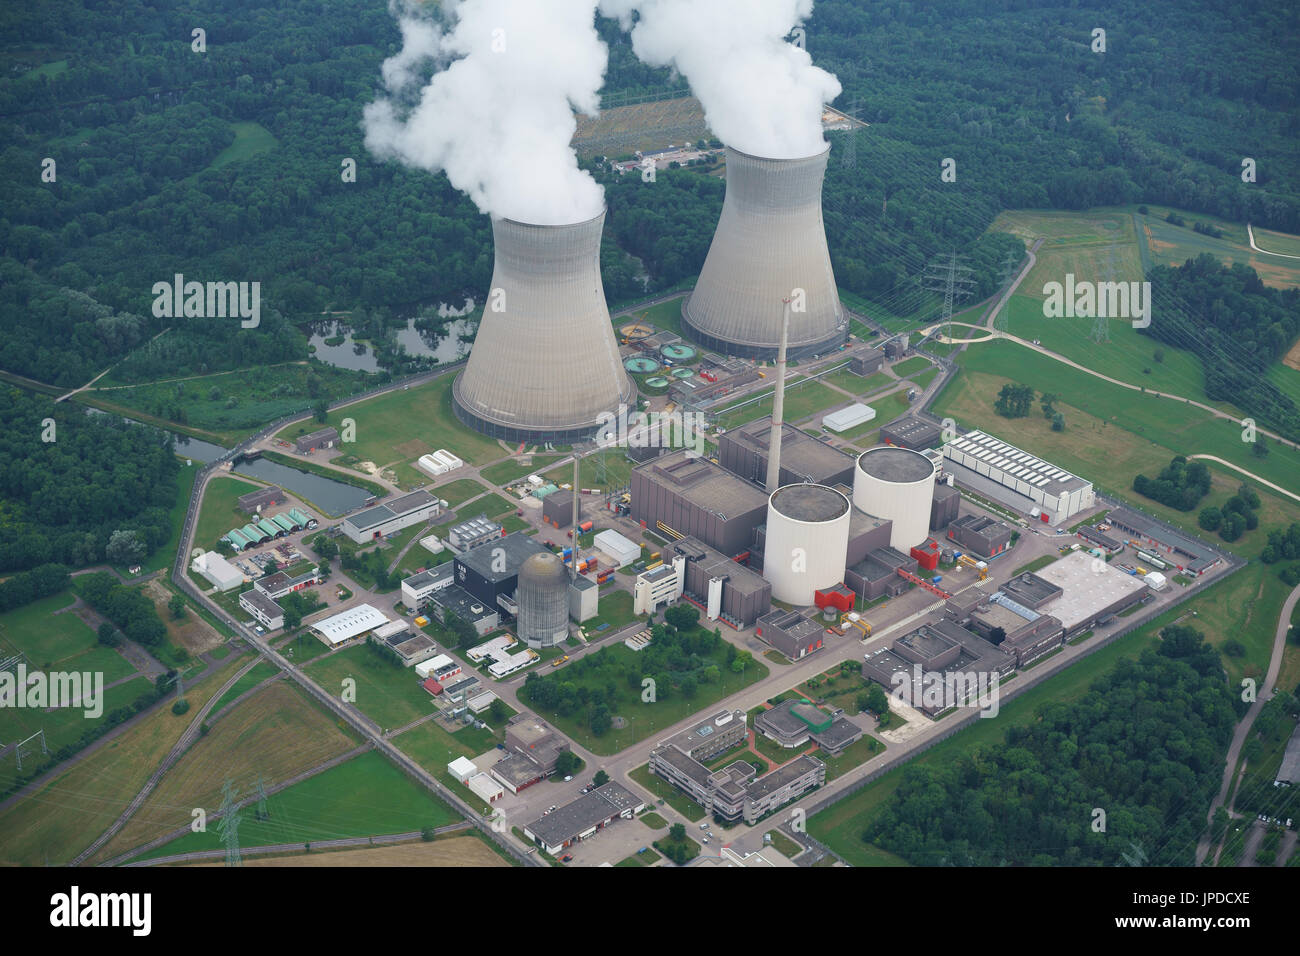 GUNDREMMINGEN NUCLEAR POWER PLANT (aerial view). near the city of Günzburg, Bavaria, Germany. - Stock Image